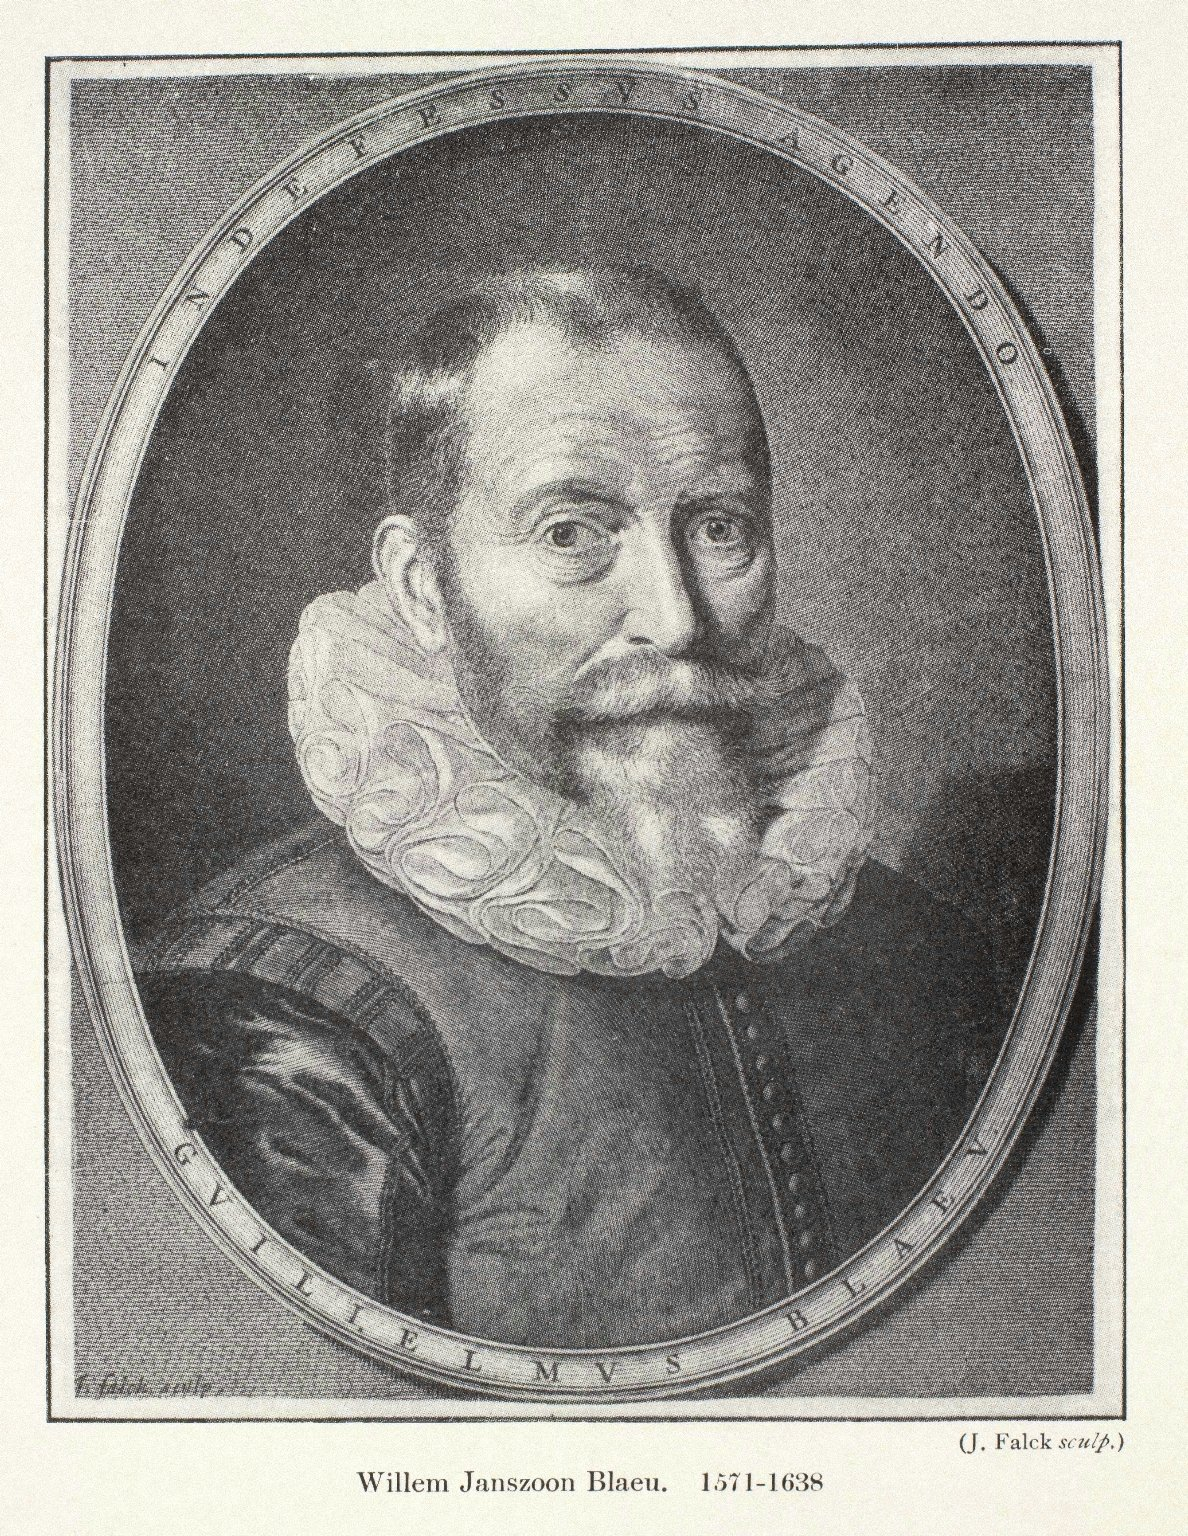 [Portrait of Willem Janszoon Blaeu] [1 of 1]